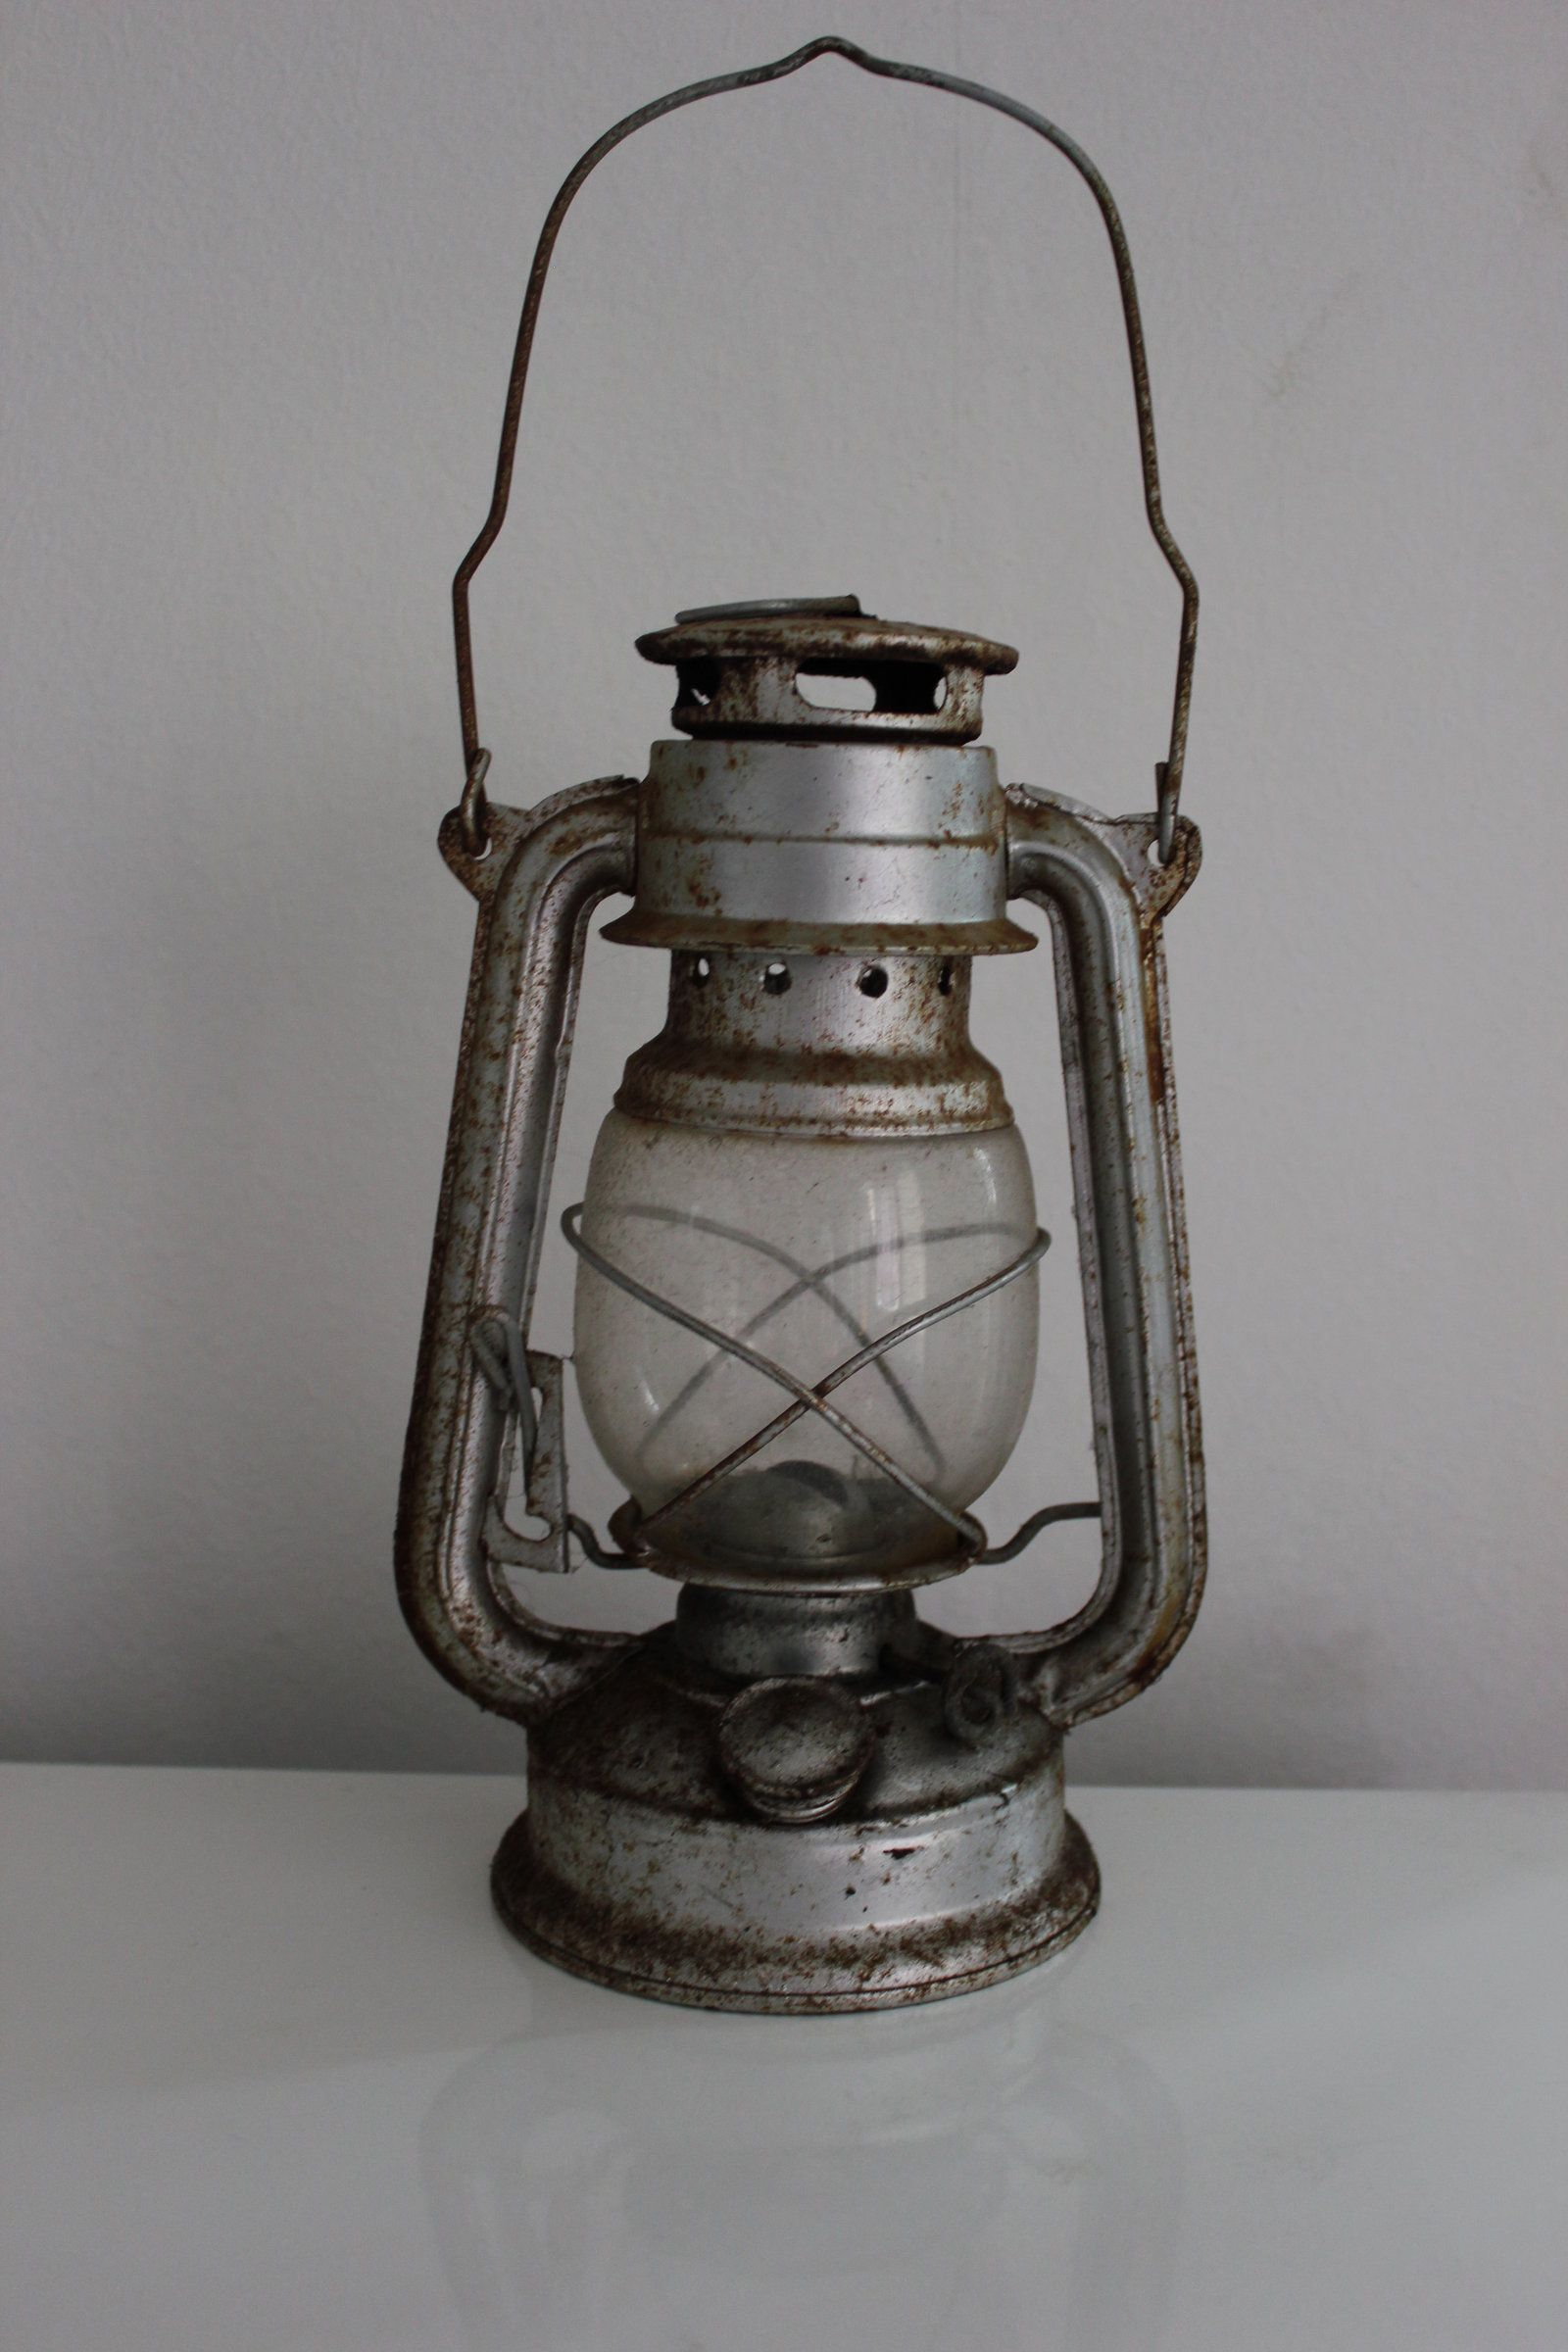 dating kerosene lanterns Large selection of vintage and antique handlan railroad lanterns, caboose marker lights, switch signal lamps and other rare, old handlan lanterns on sale here daily.